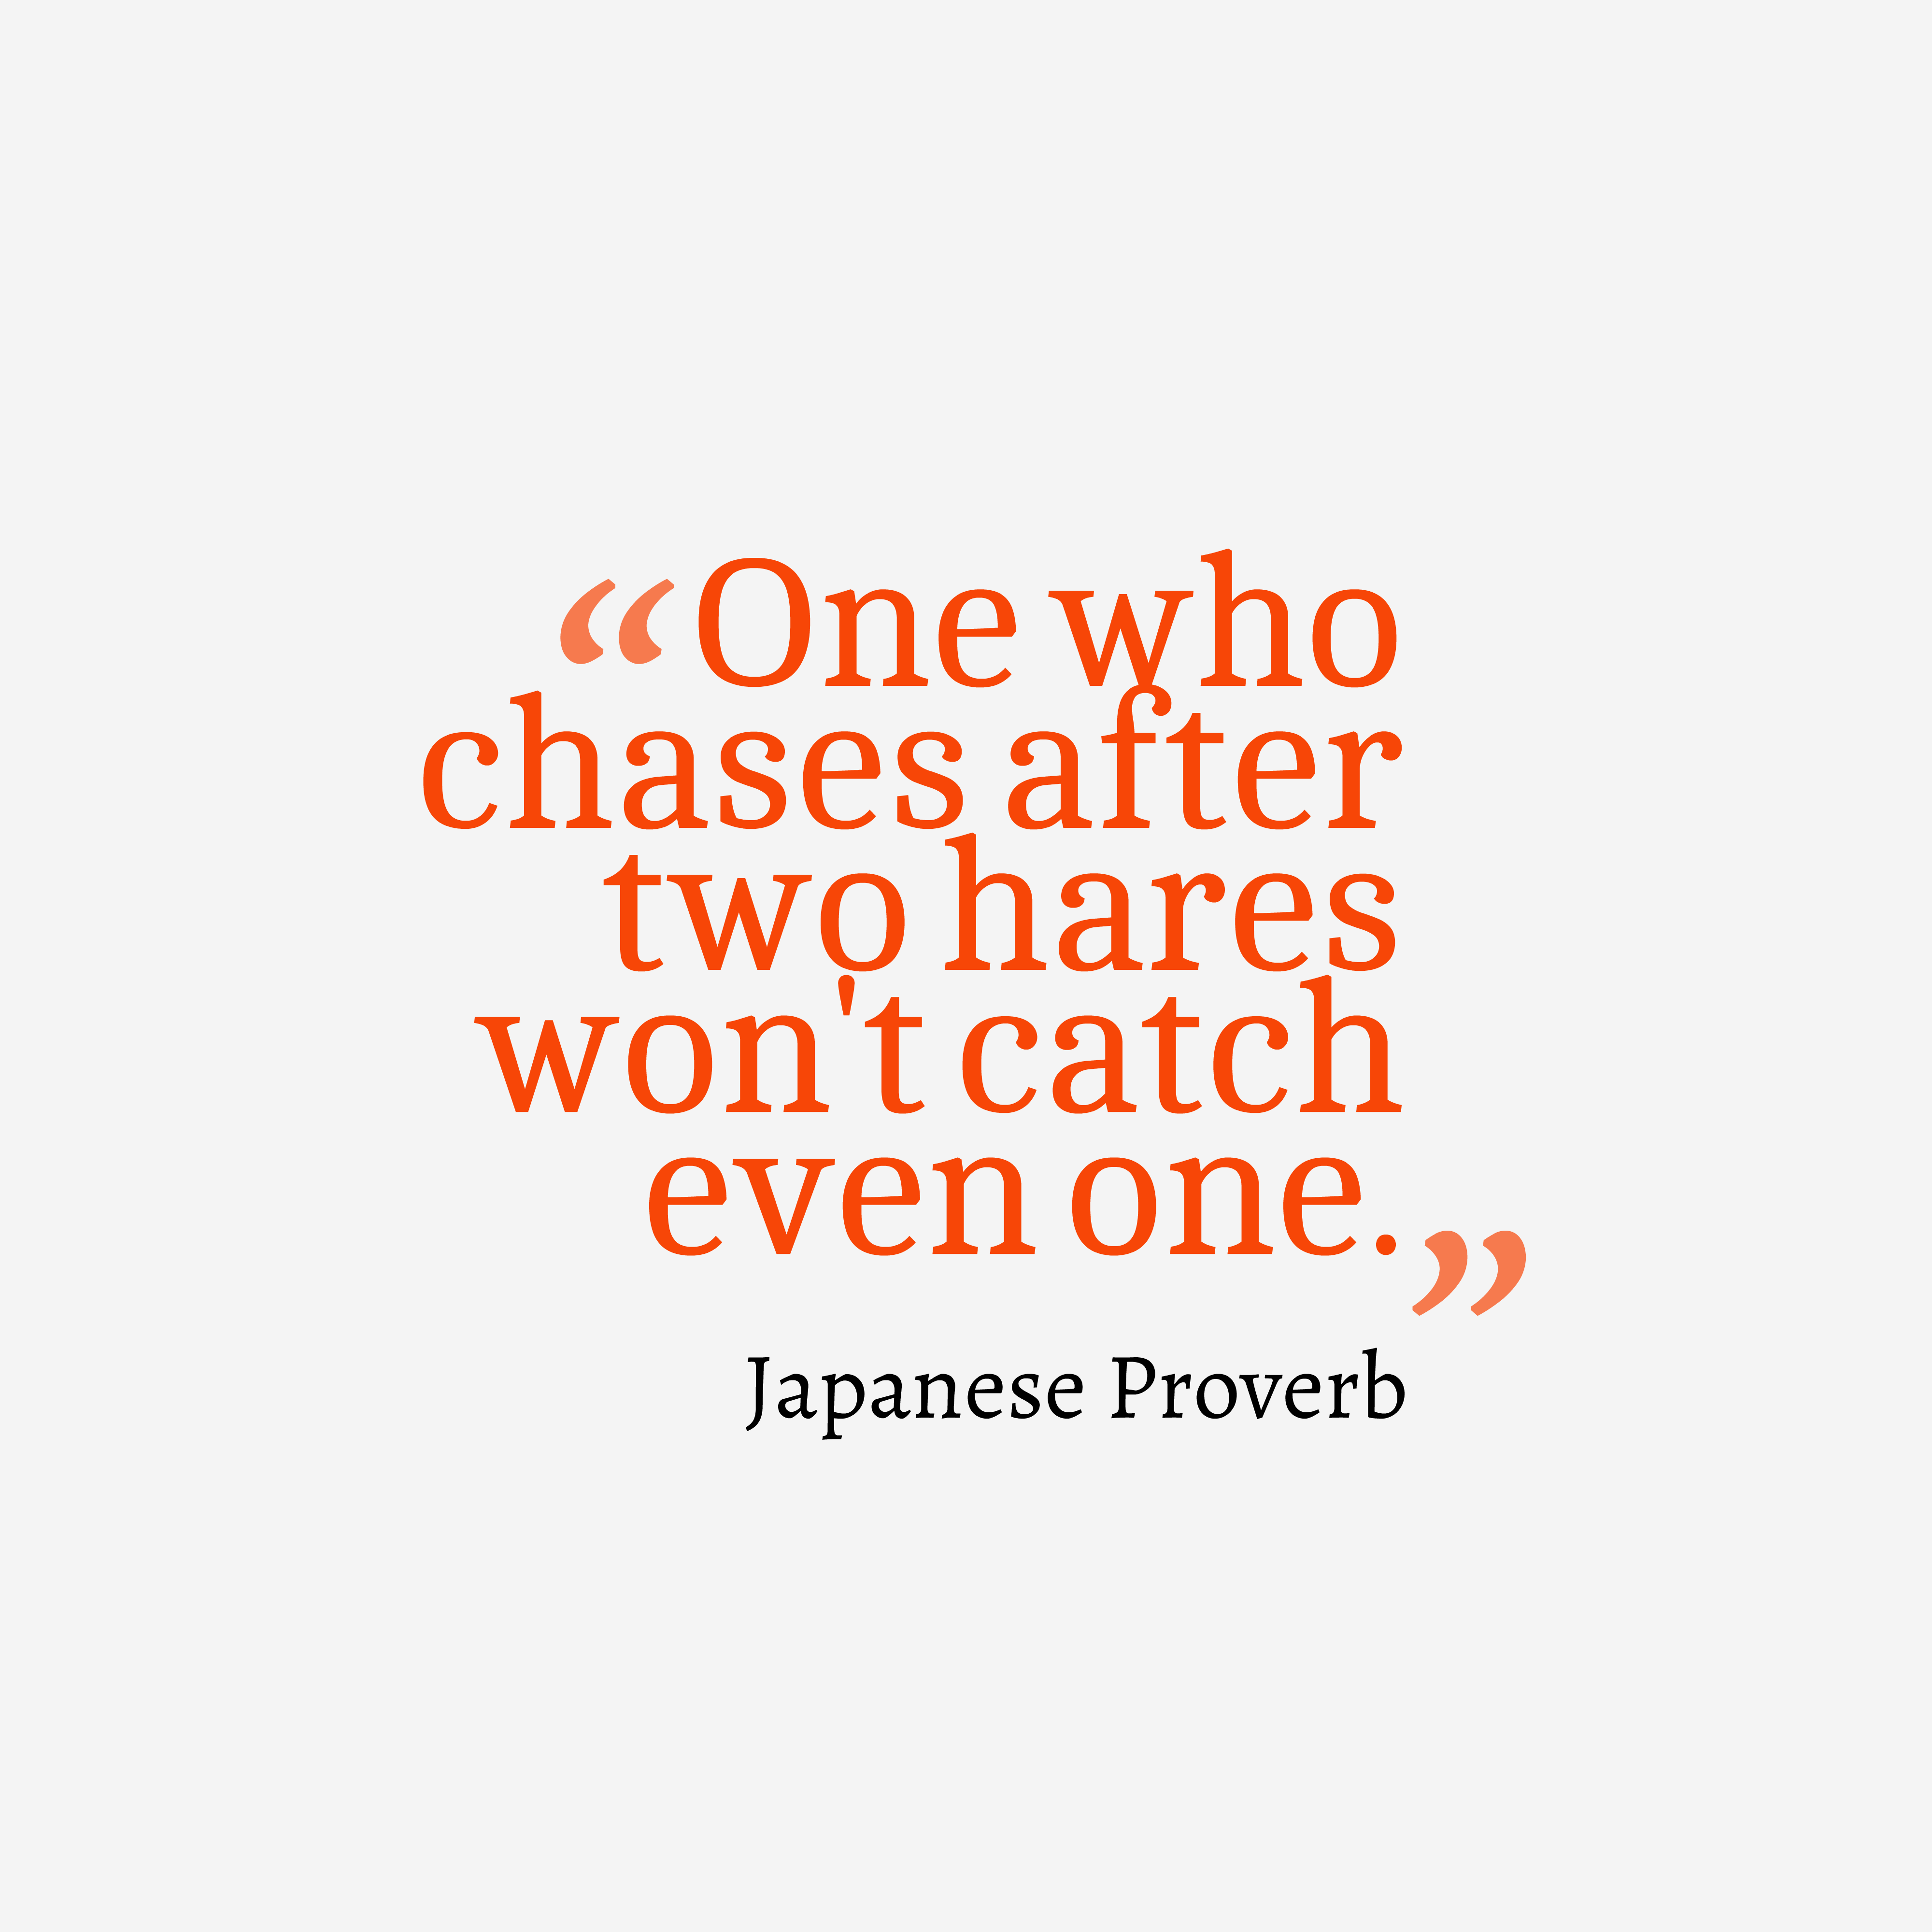 Quotes image of One who chases after two hares won't catch even one.